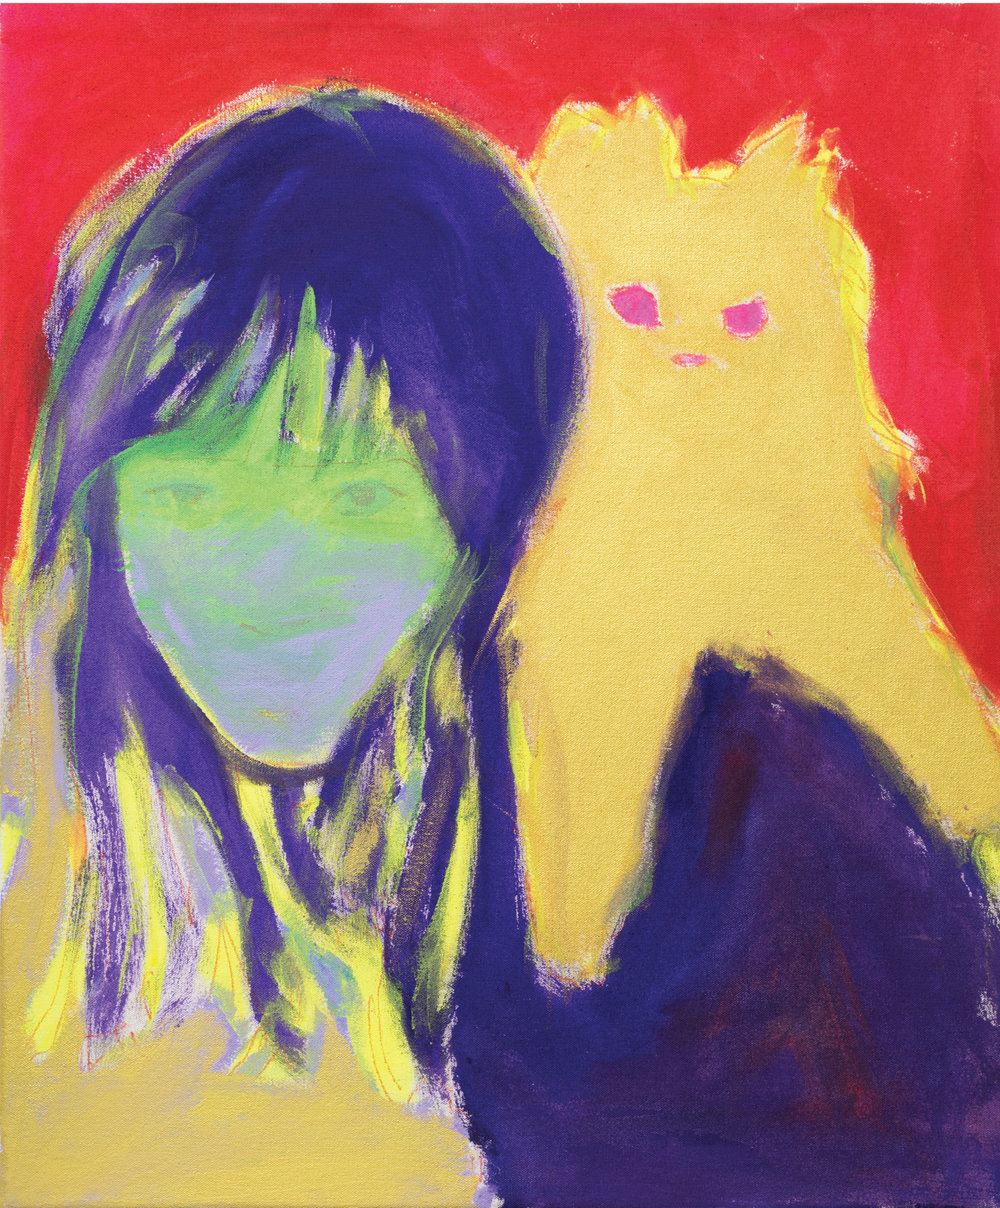 Darrell Hawkins, 'Love Cat' 2016